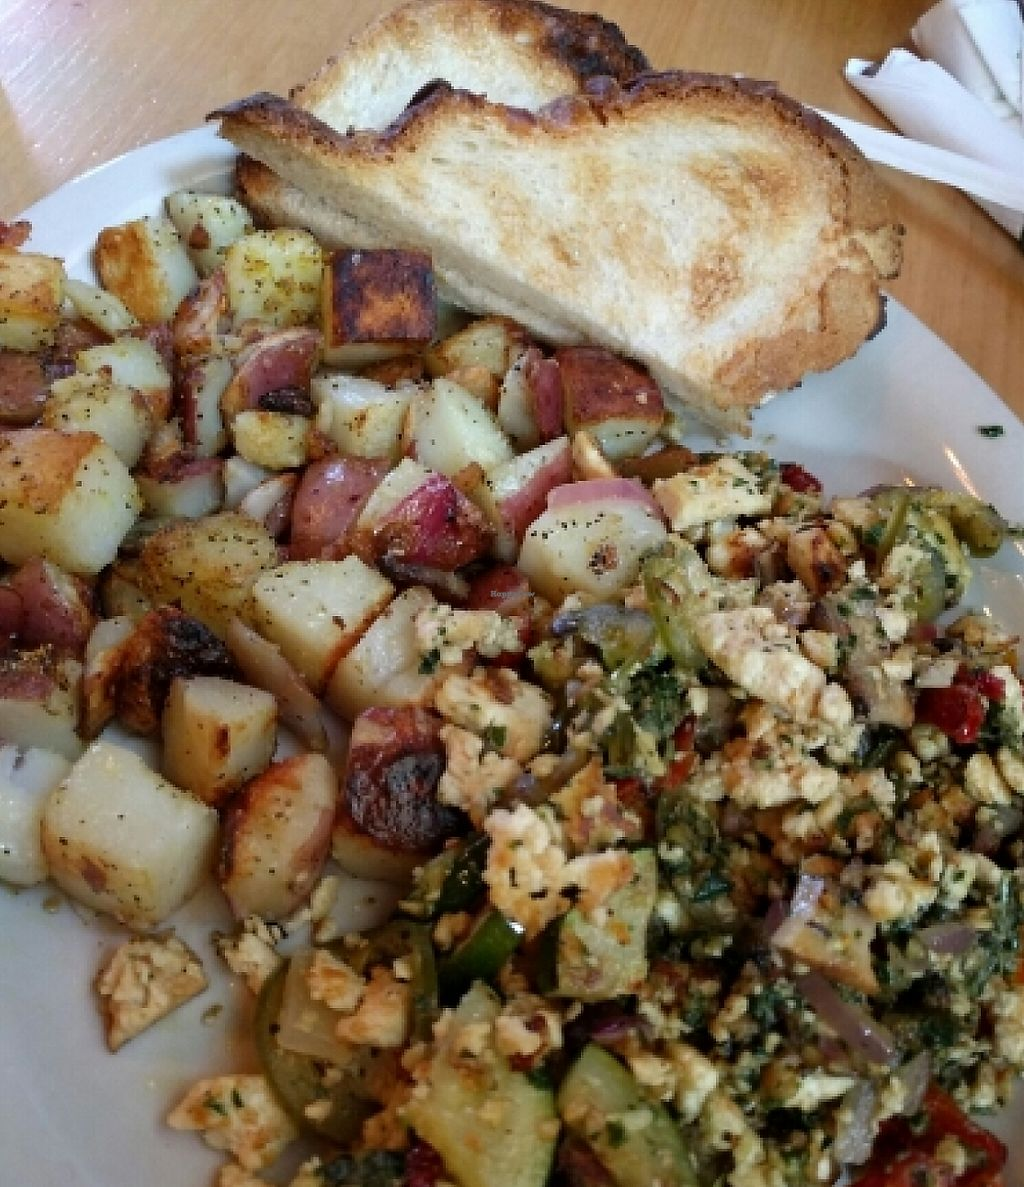 "Photo of Crow's Nest  by <a href=""/members/profile/VeganSoapDude"">VeganSoapDude</a> <br/>Vegan Queen Anne's Revenge Scramble  <br/> February 6, 2016  - <a href='/contact/abuse/image/7174/204780'>Report</a>"